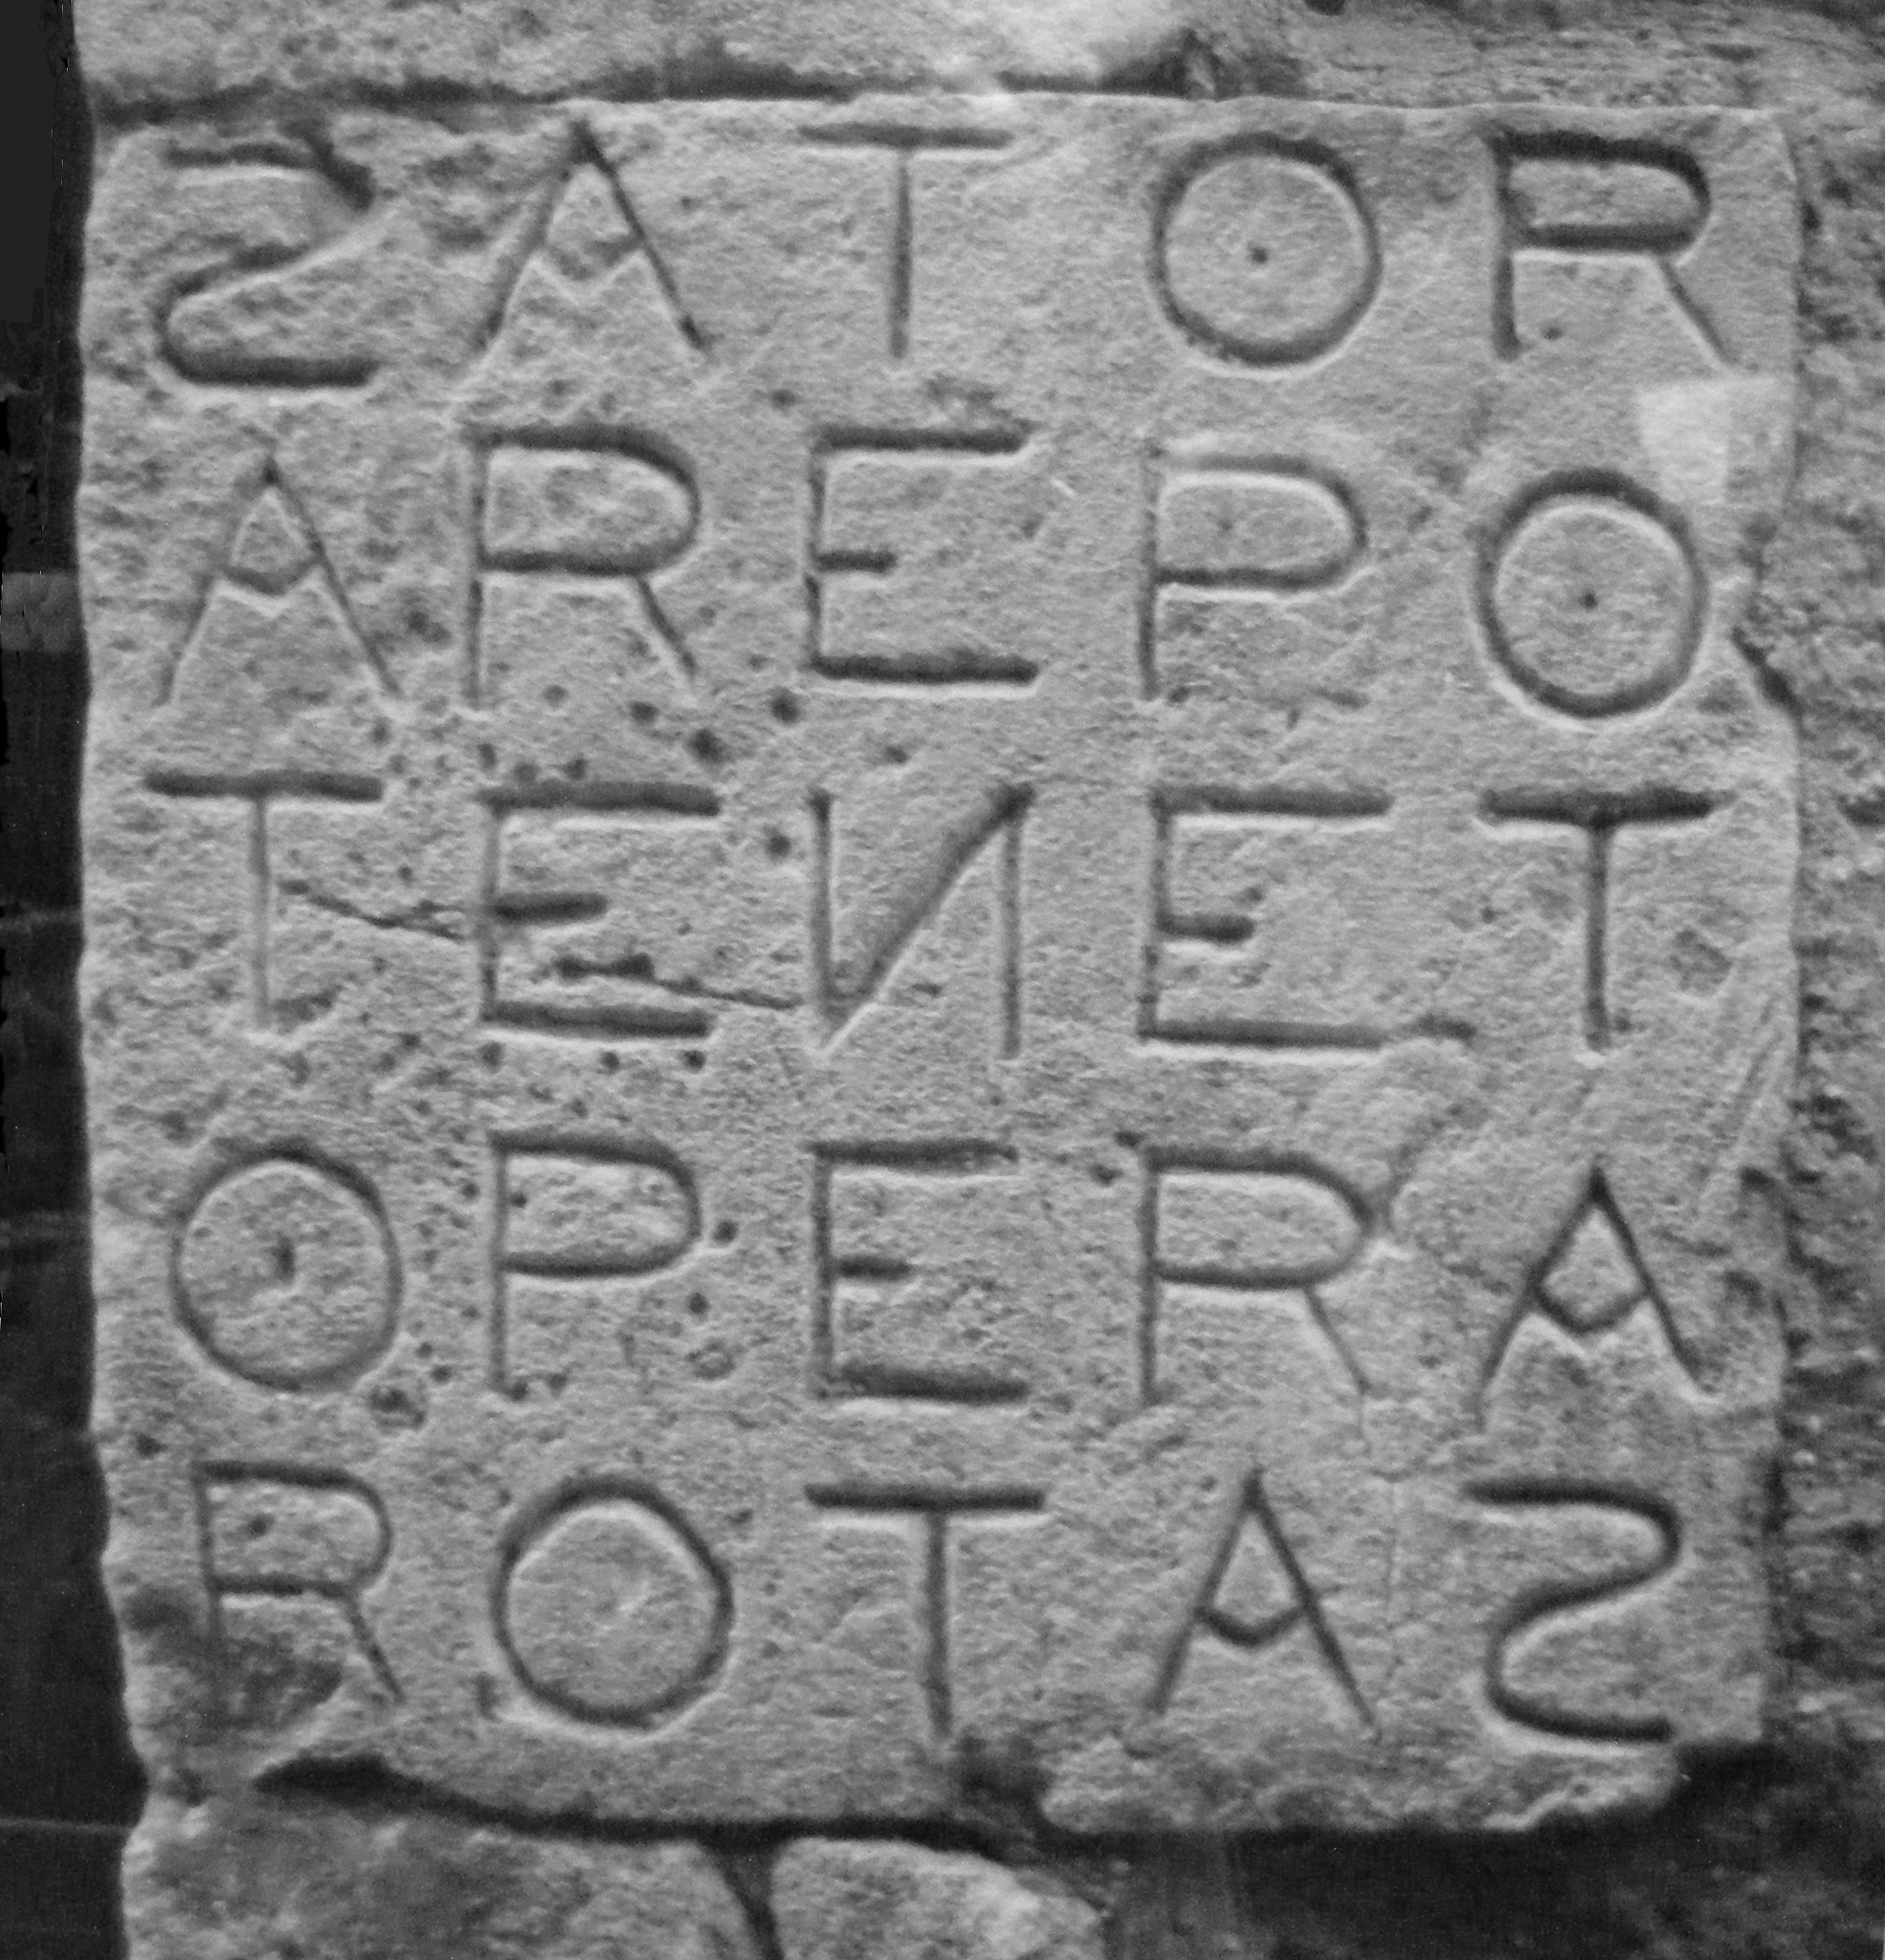 (A photograph of a rotas square inscription. The square consists of 25 letters arranged in a 5×5 grid, spelling out the words SATOR, AREPO, TENET, OPERA, and ROTAS on successive rows and columns.)